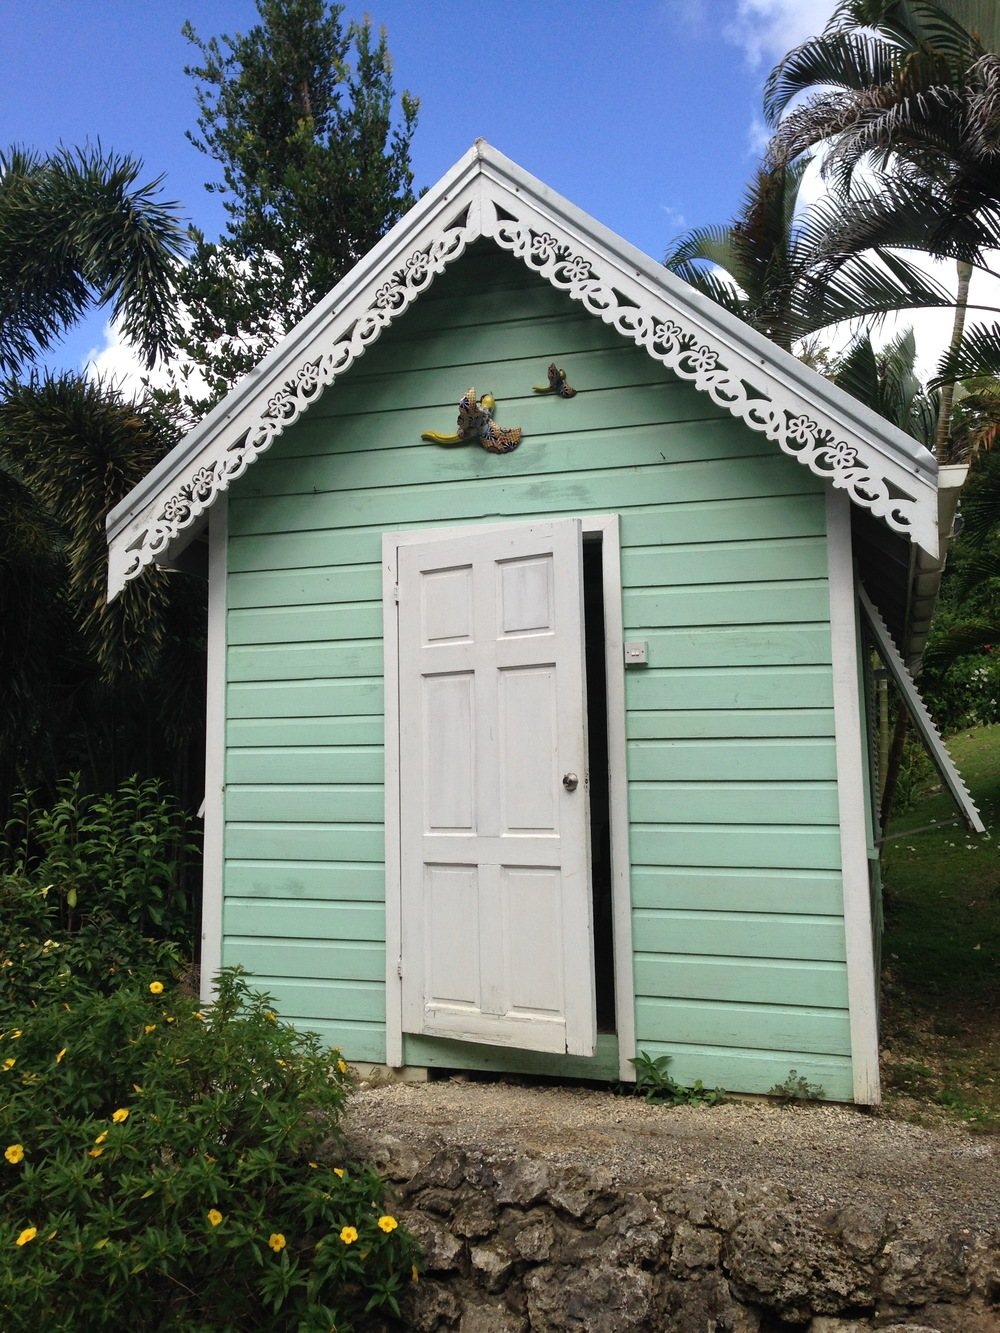 A tiny building with scroll work in Barbados